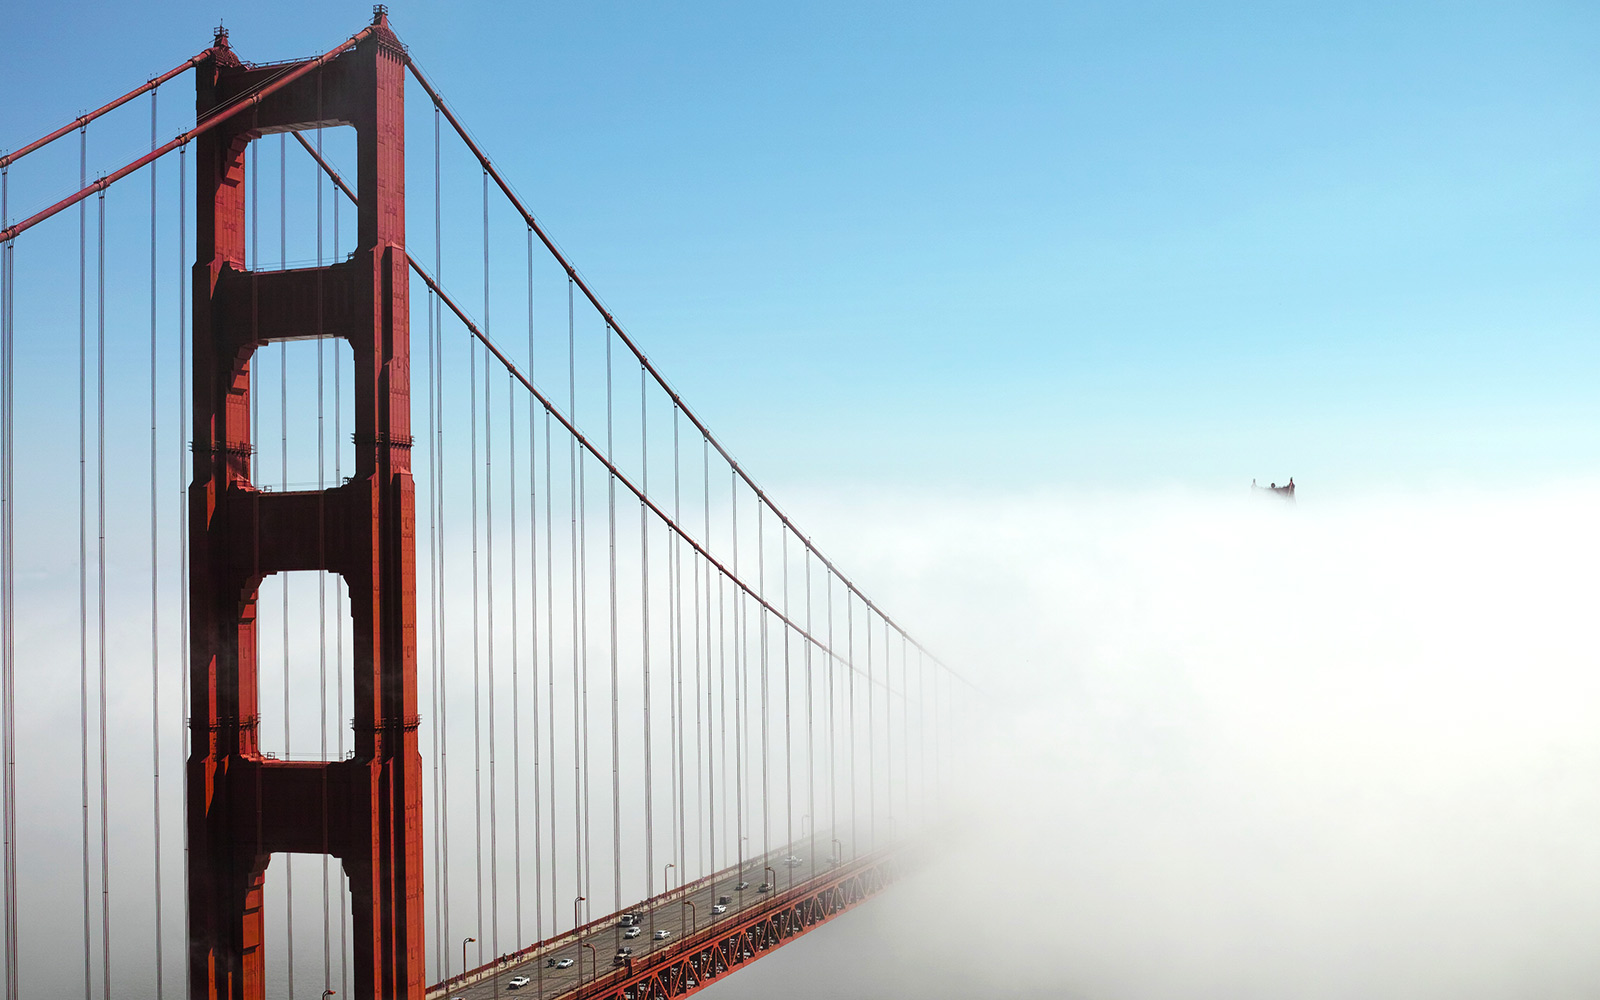 Secrets of the Golden Gate Bridge